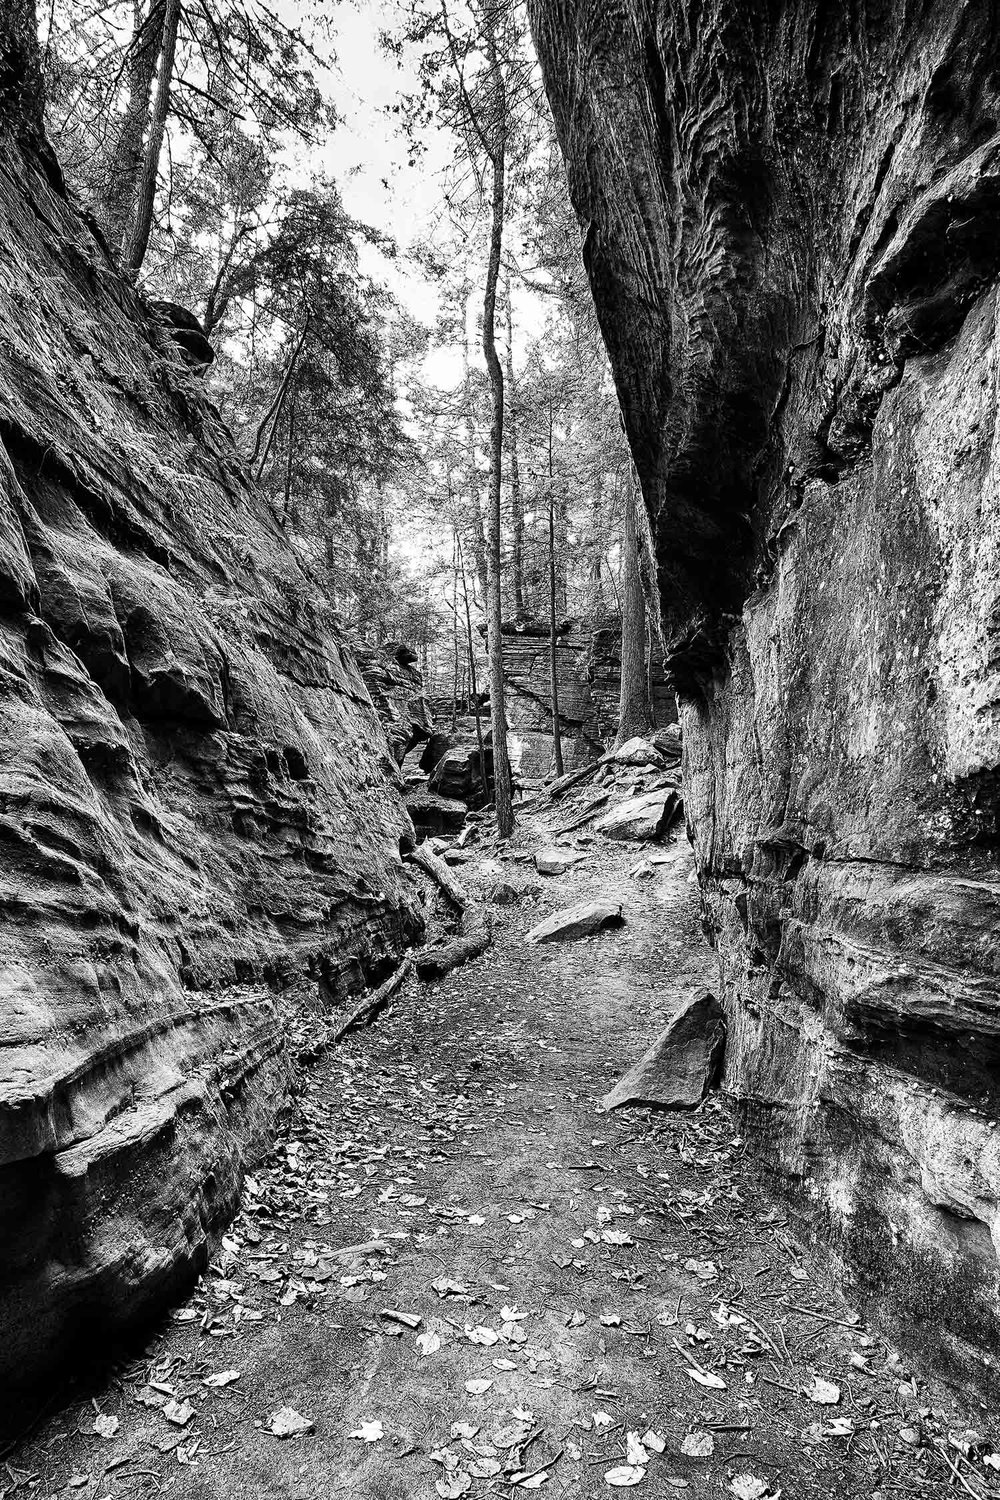 Trail Slot - Virginia Kendall Ledges, Cuyahoga Valley National Park